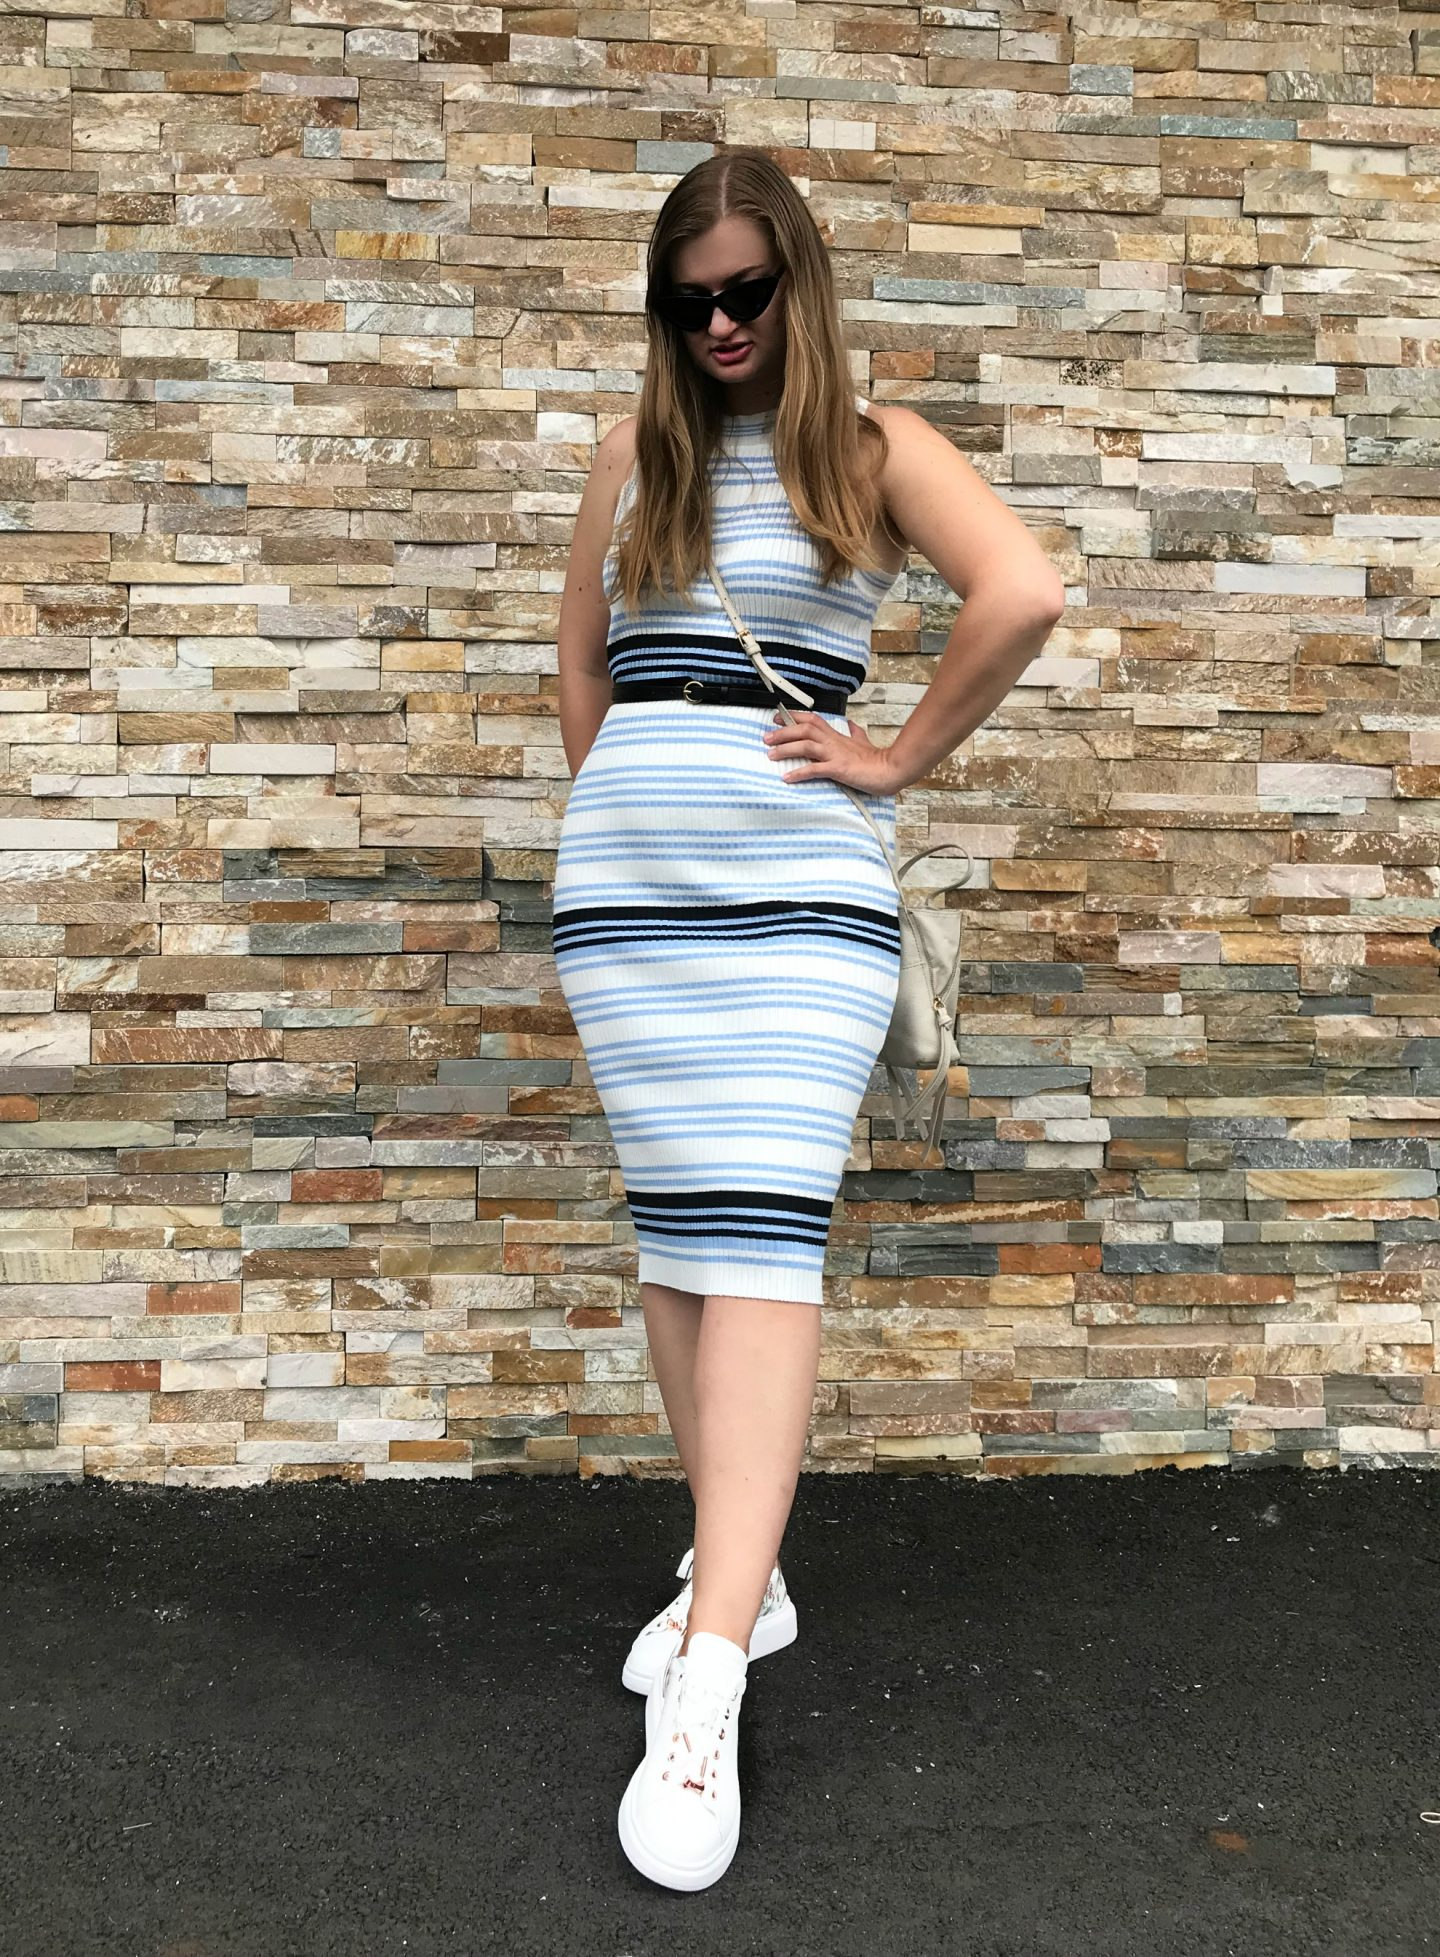 Dresses with Sneakers: Day 3 of The EasilyDressed Challenge Part II